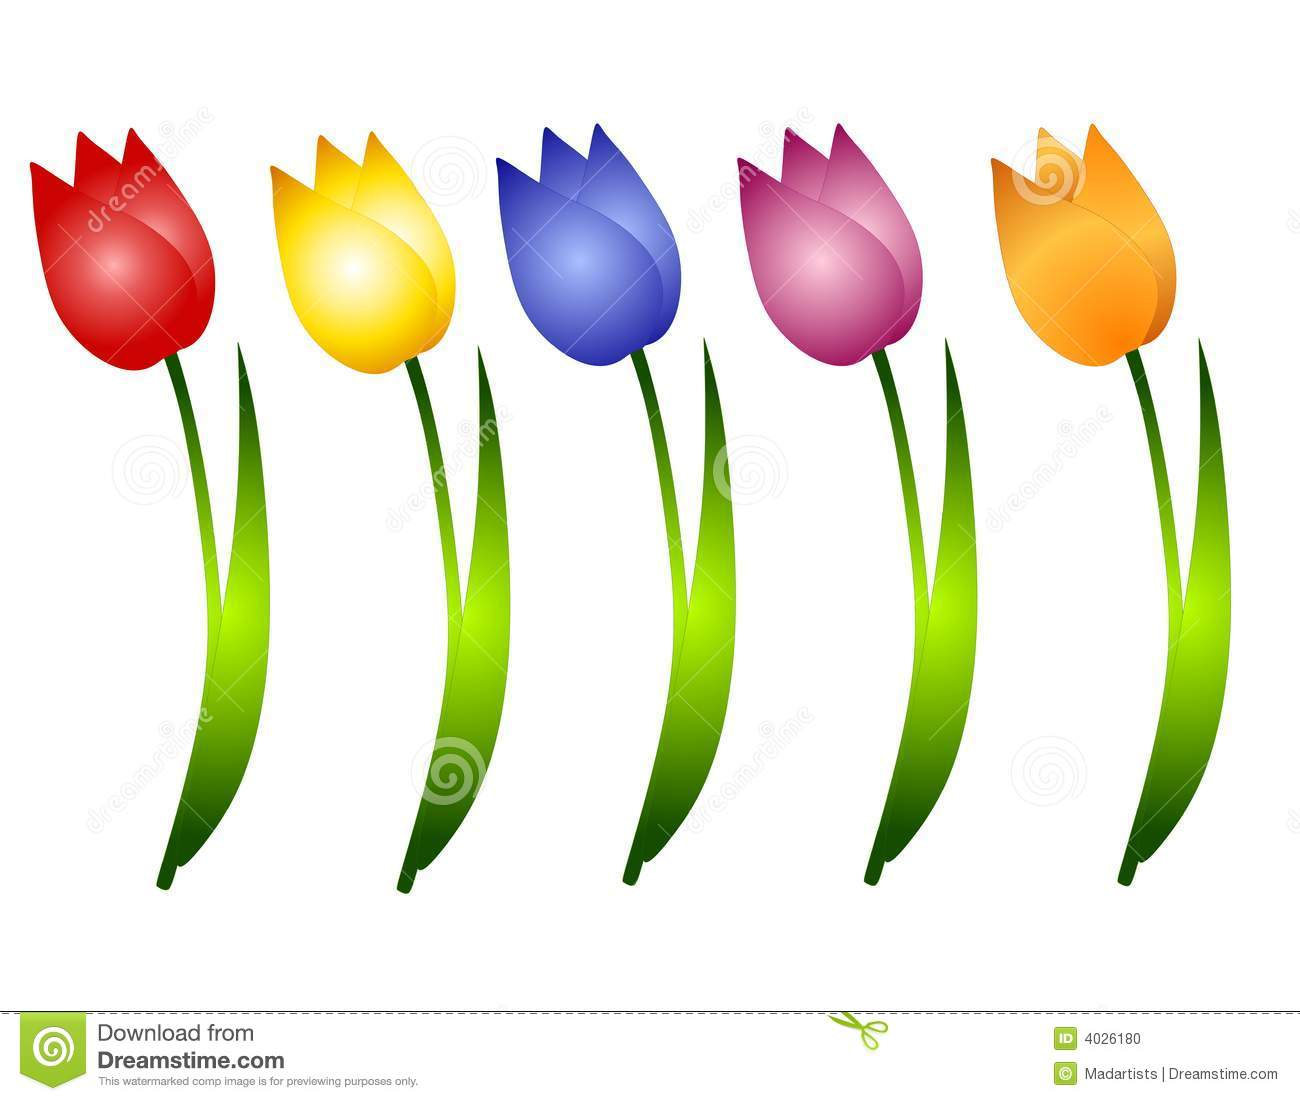 Assorted Spring Tulips Flowers Clip Art Stock Photo - Image: 4026180